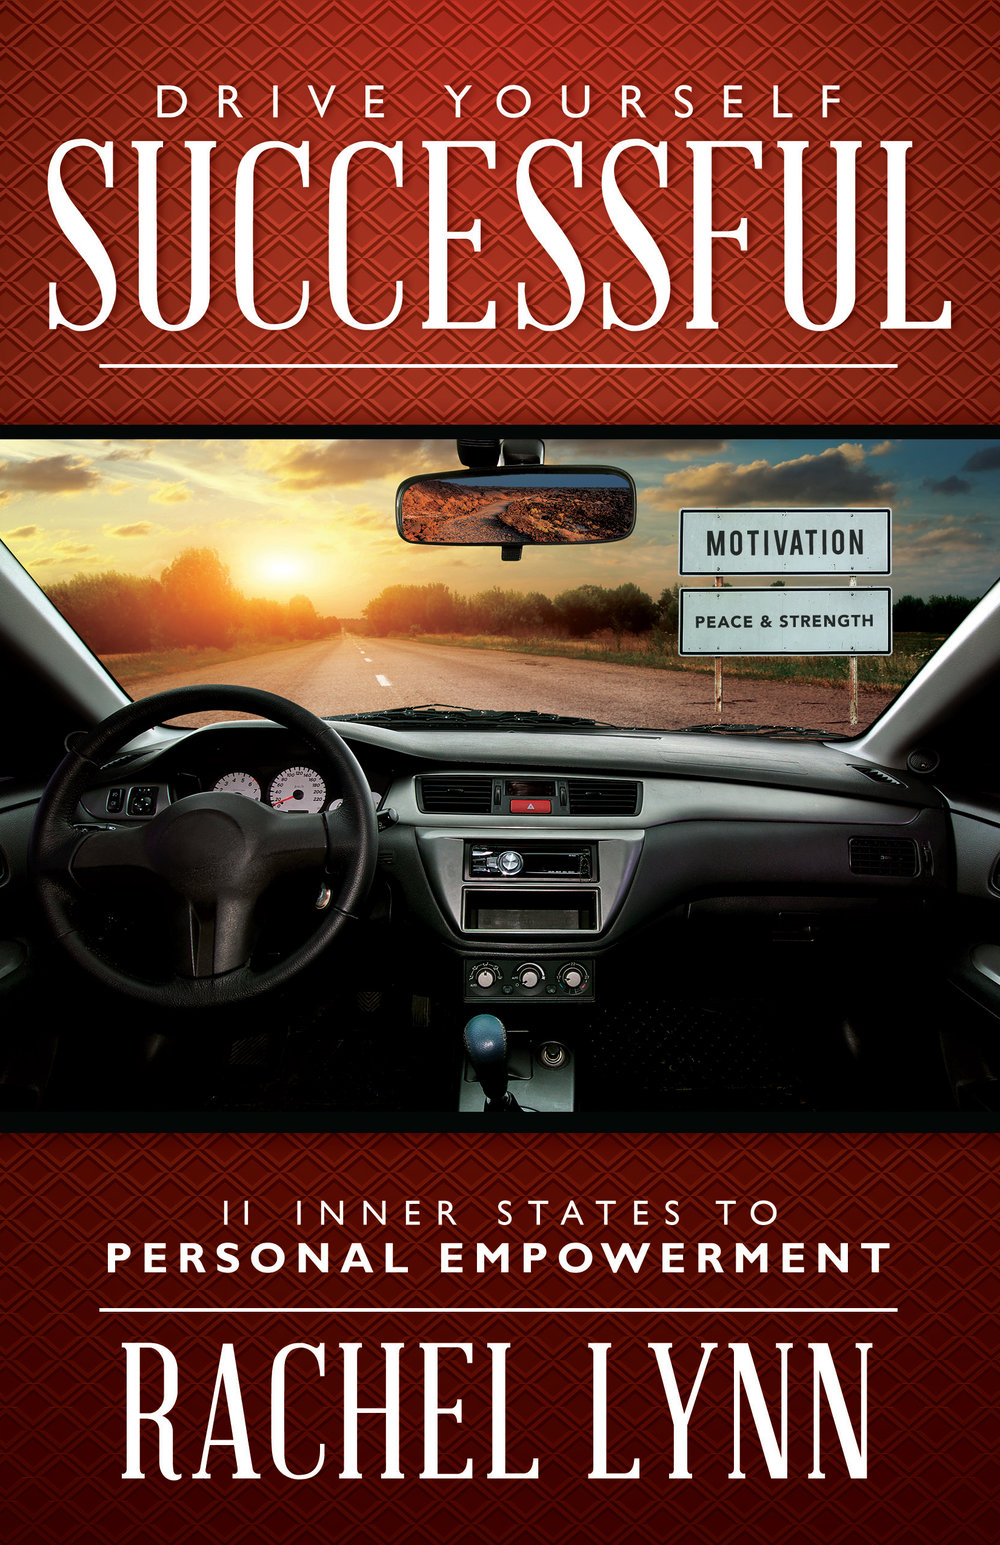 Drive Yourself Successful  - By rachel lynn